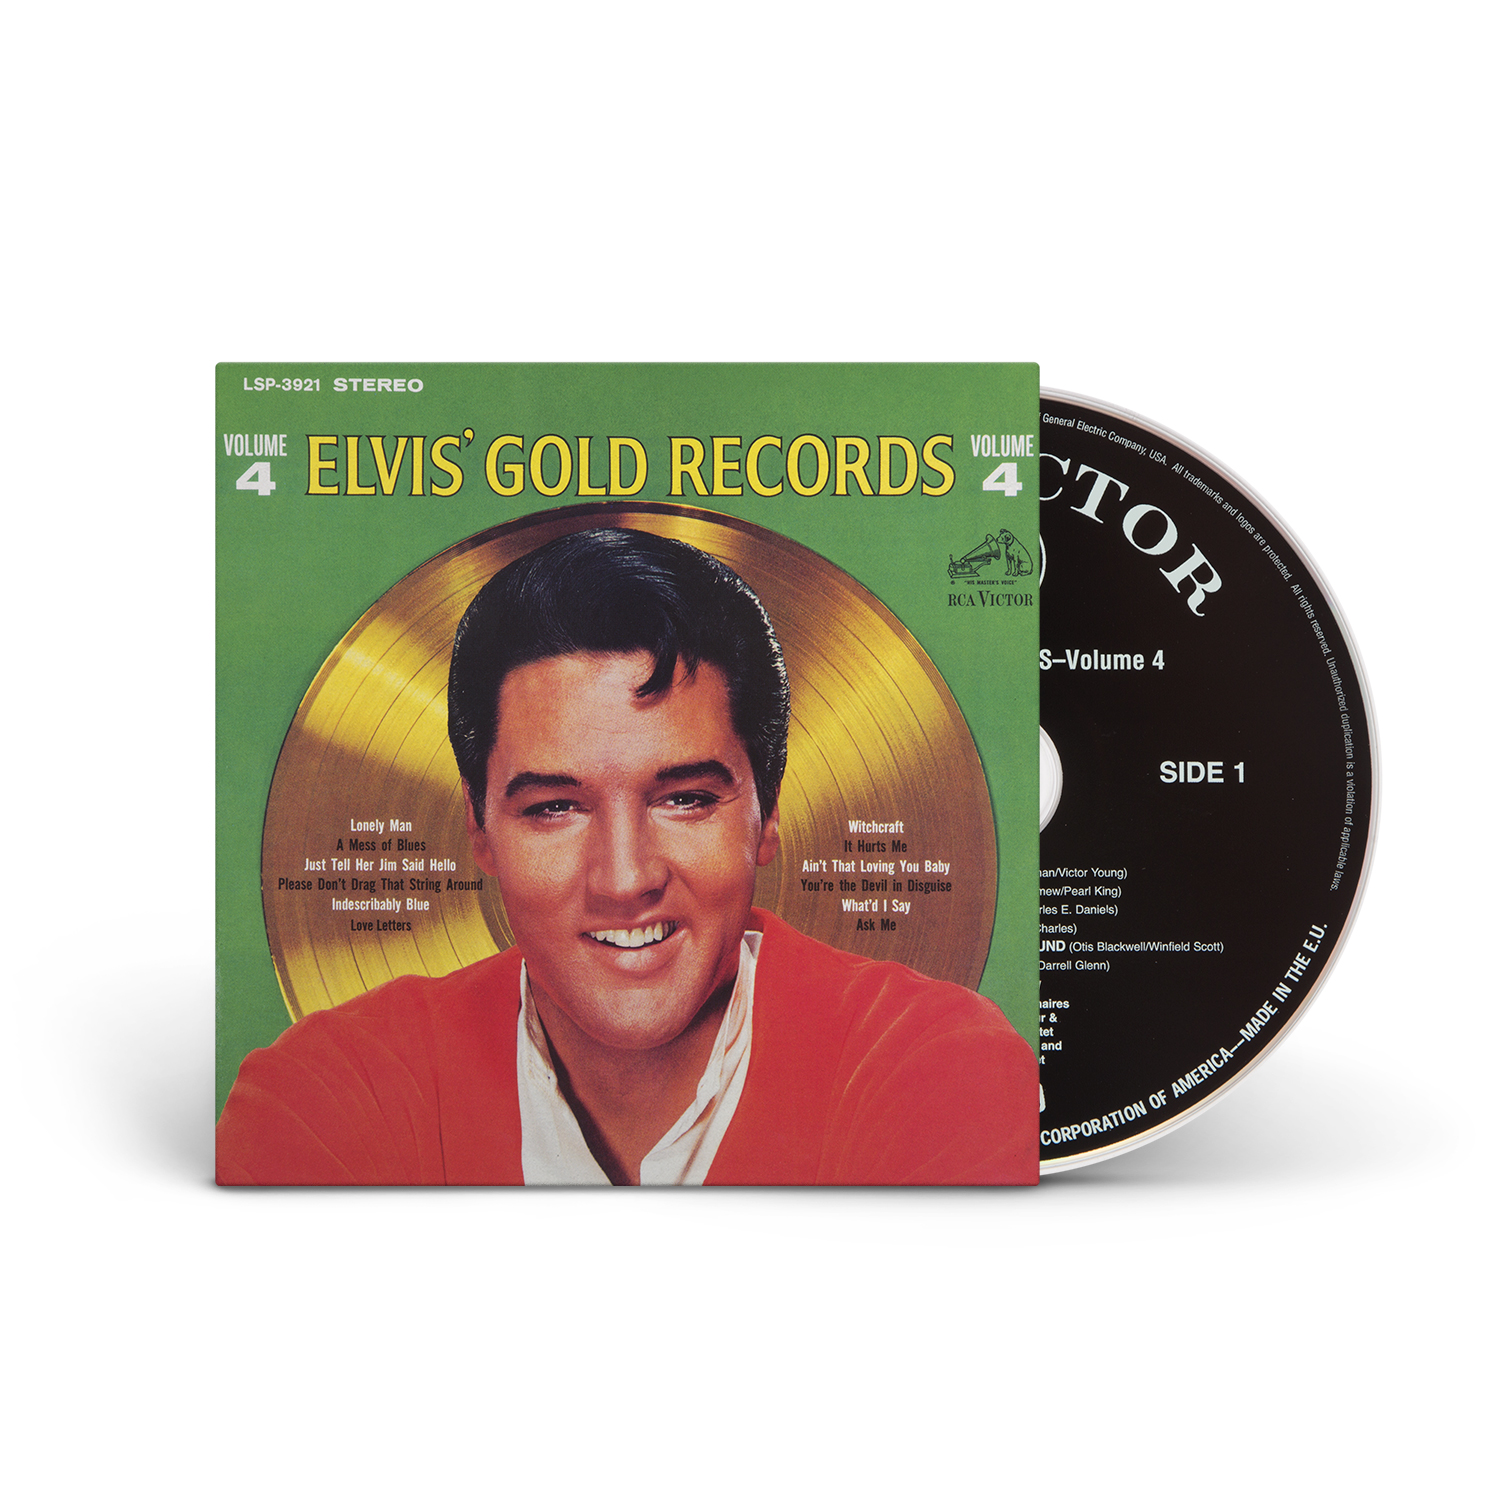 Elvis Gold Records Vol. 4 FTD 2-Disc CD